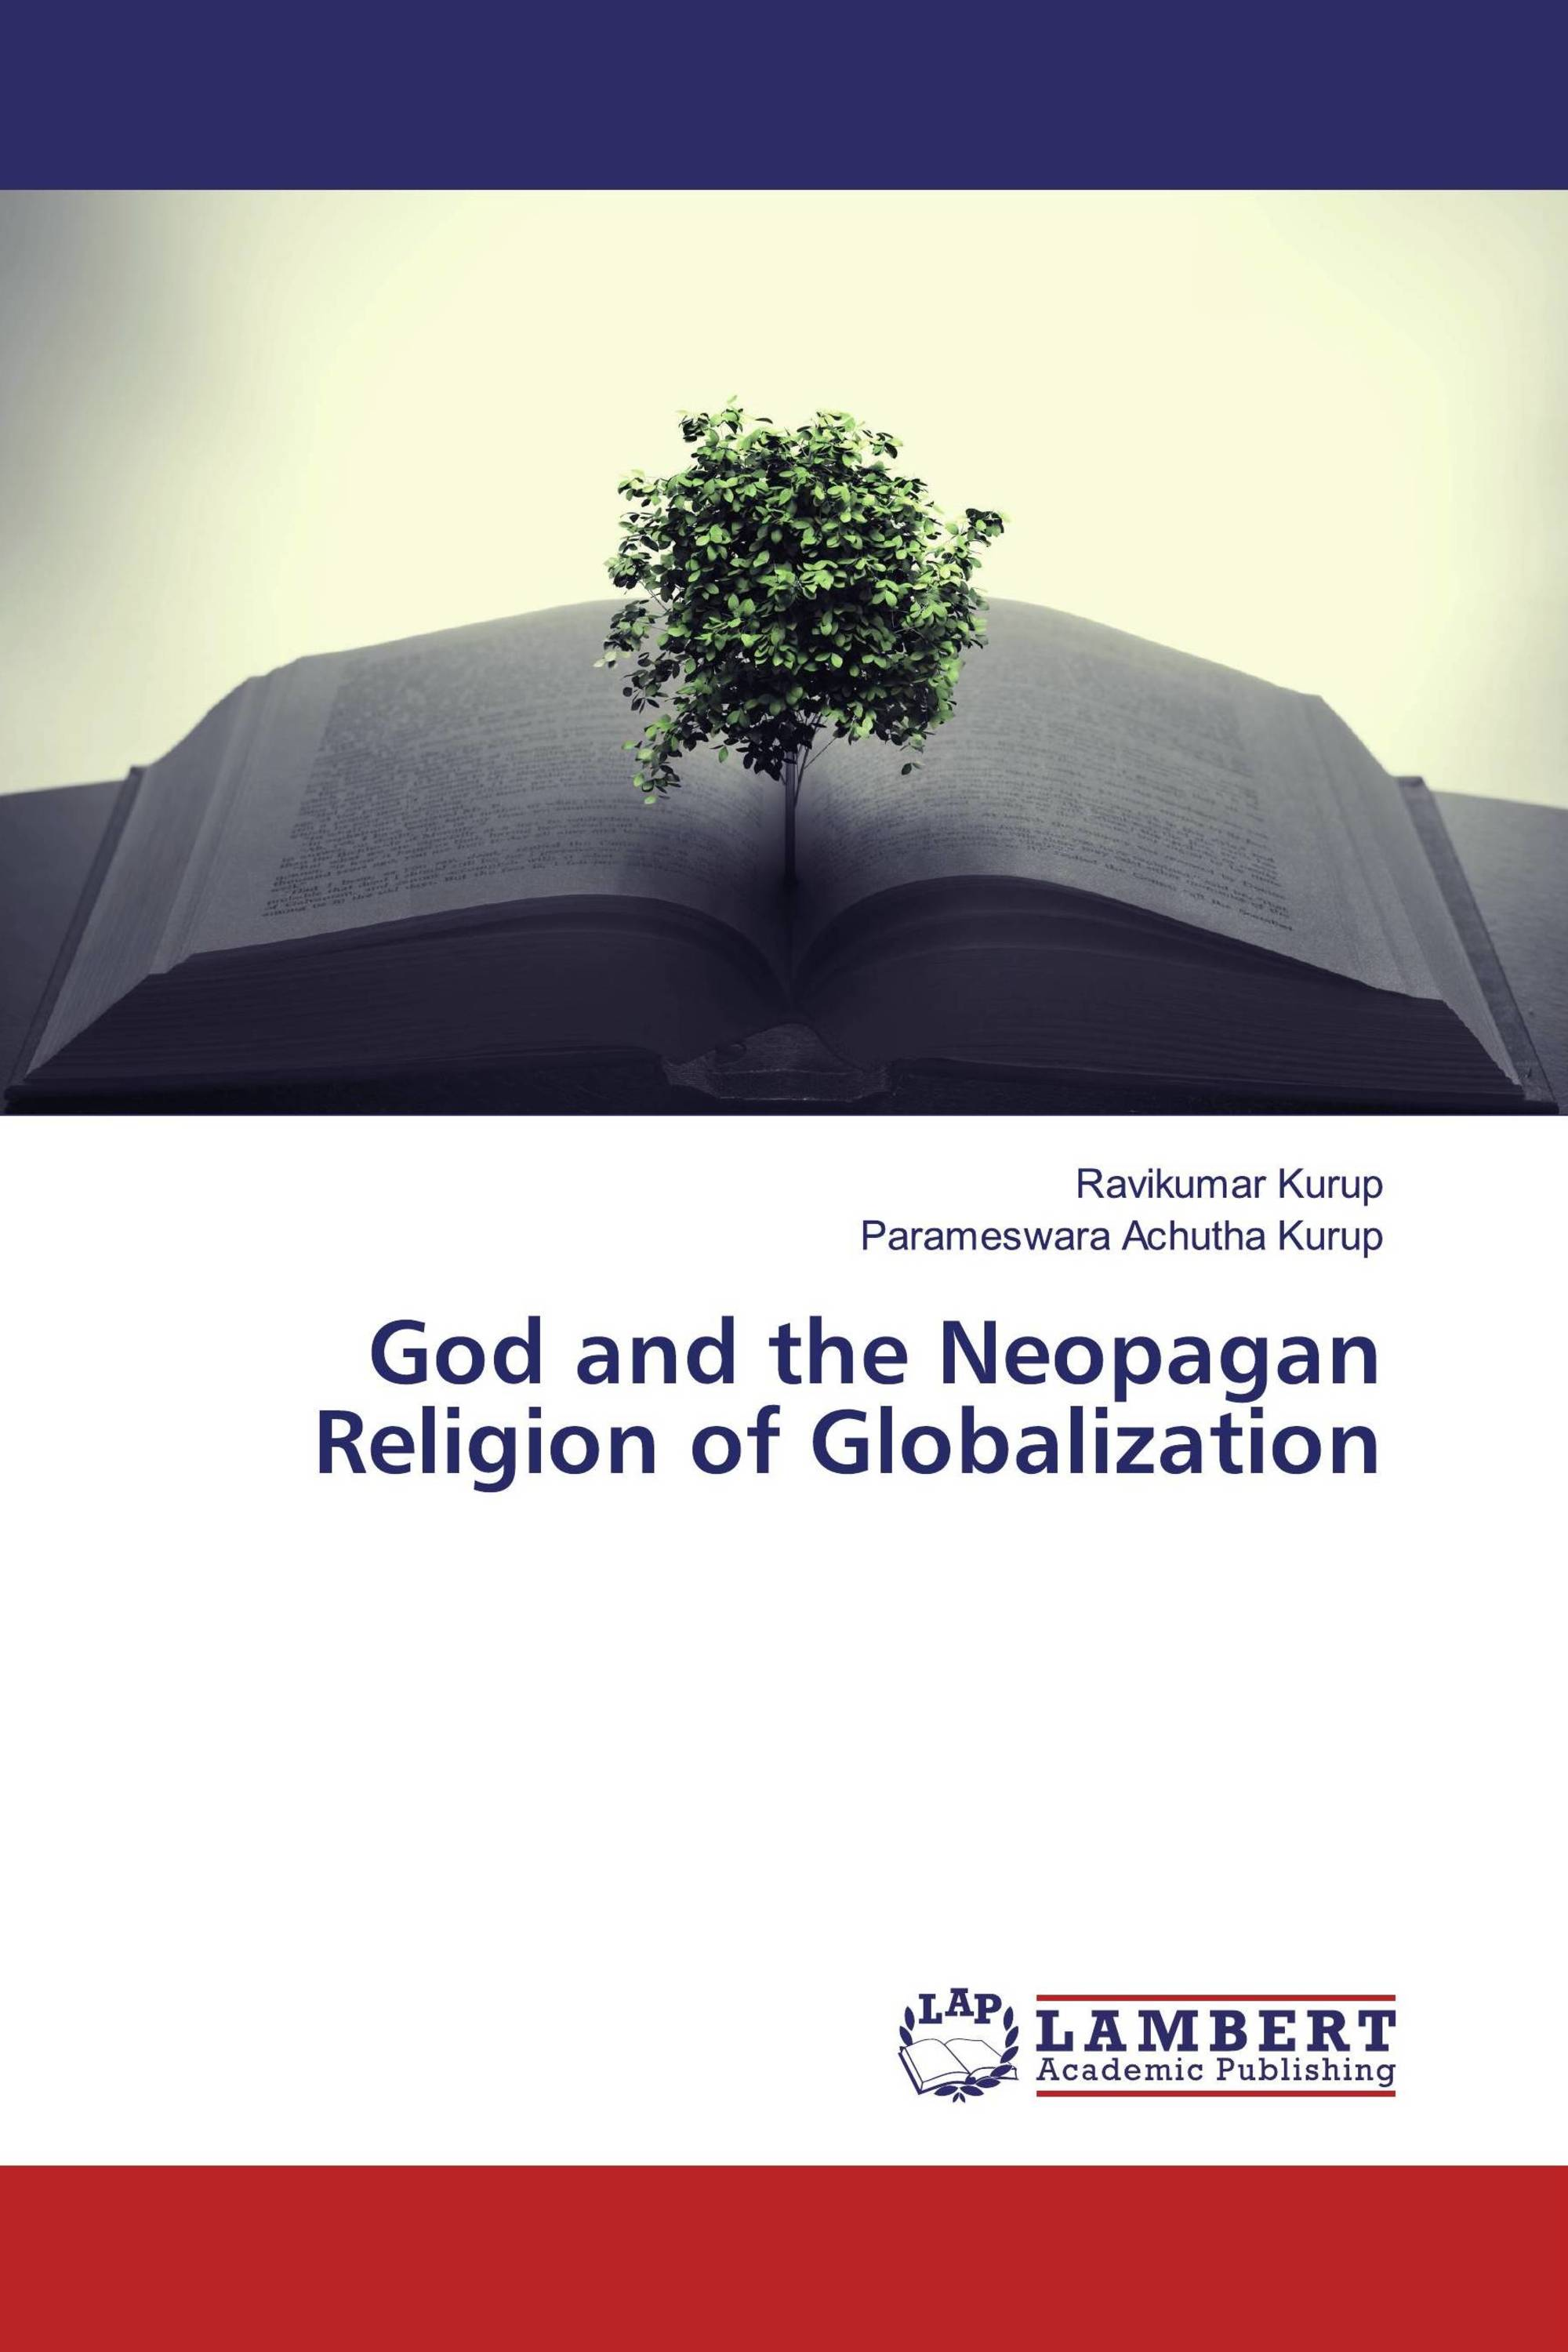 God and the Neopagan Religion of Globalization